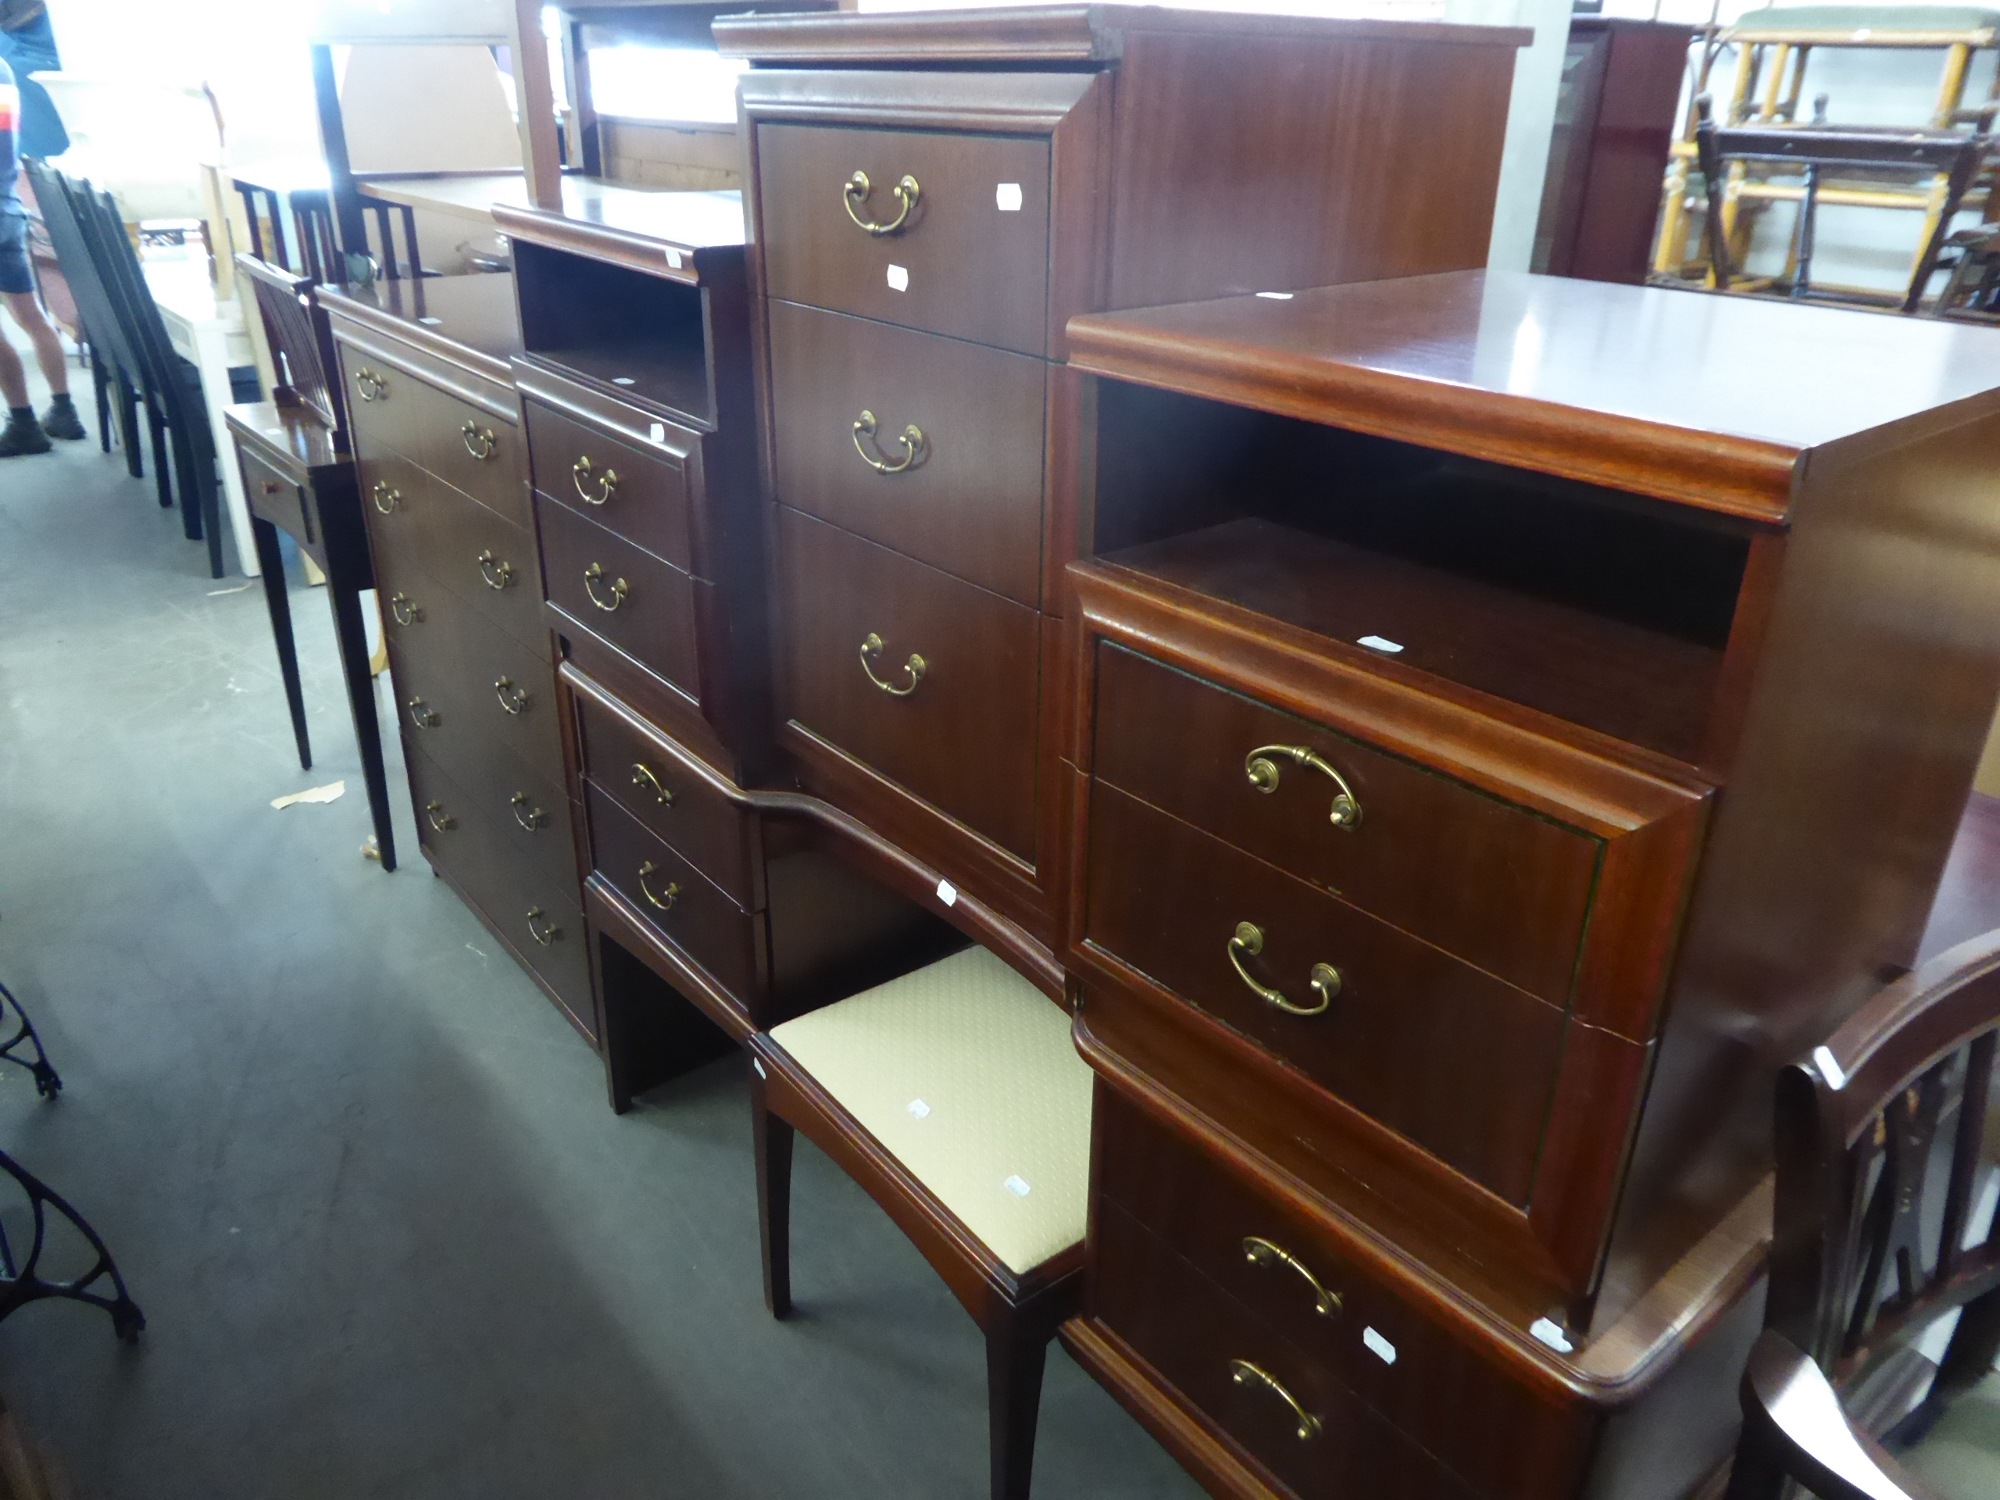 Lot 56 - MAHOGANY BEDROOM FURNISHINGS VIZ, DOUBLE PEDESTAL DRESSING TABLE, WITH TRIPLE MIRRORS, A CHEST OF